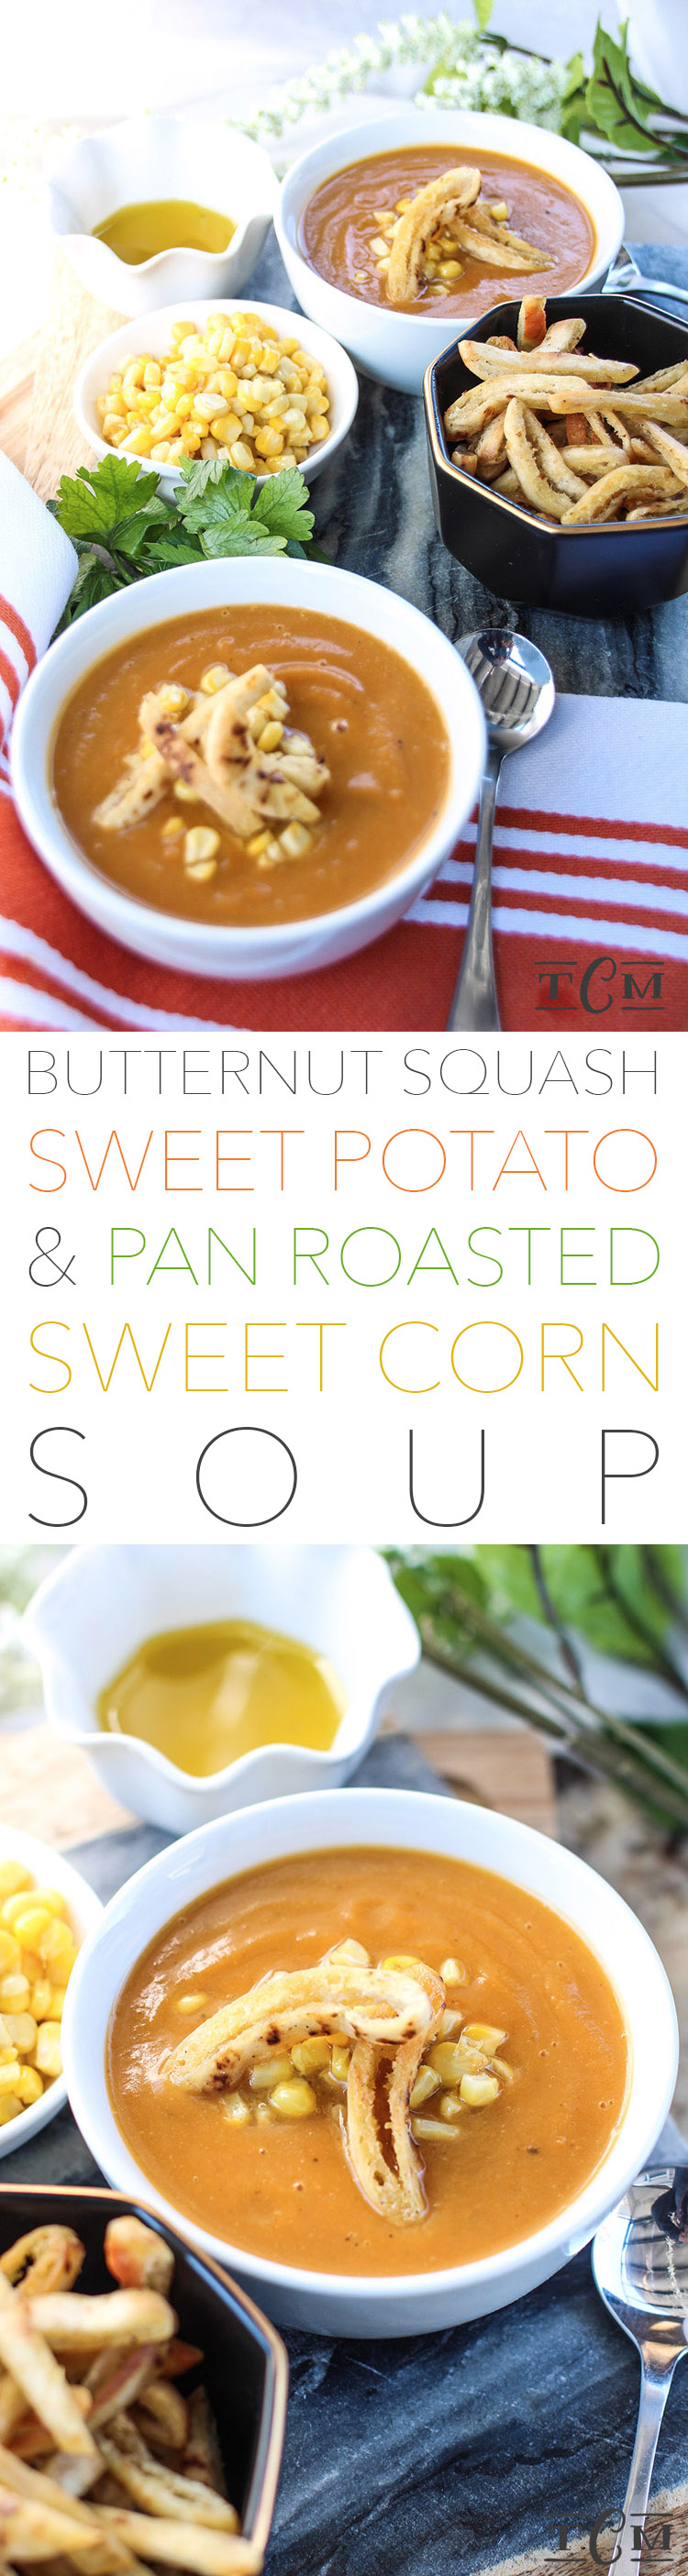 http://thecottagemarket.com/wp-content/uploads/2017/03/Butternut-Squash-Sweet-Potato-Roasted-Sweet-Corn-Soup-tower-1.jpg